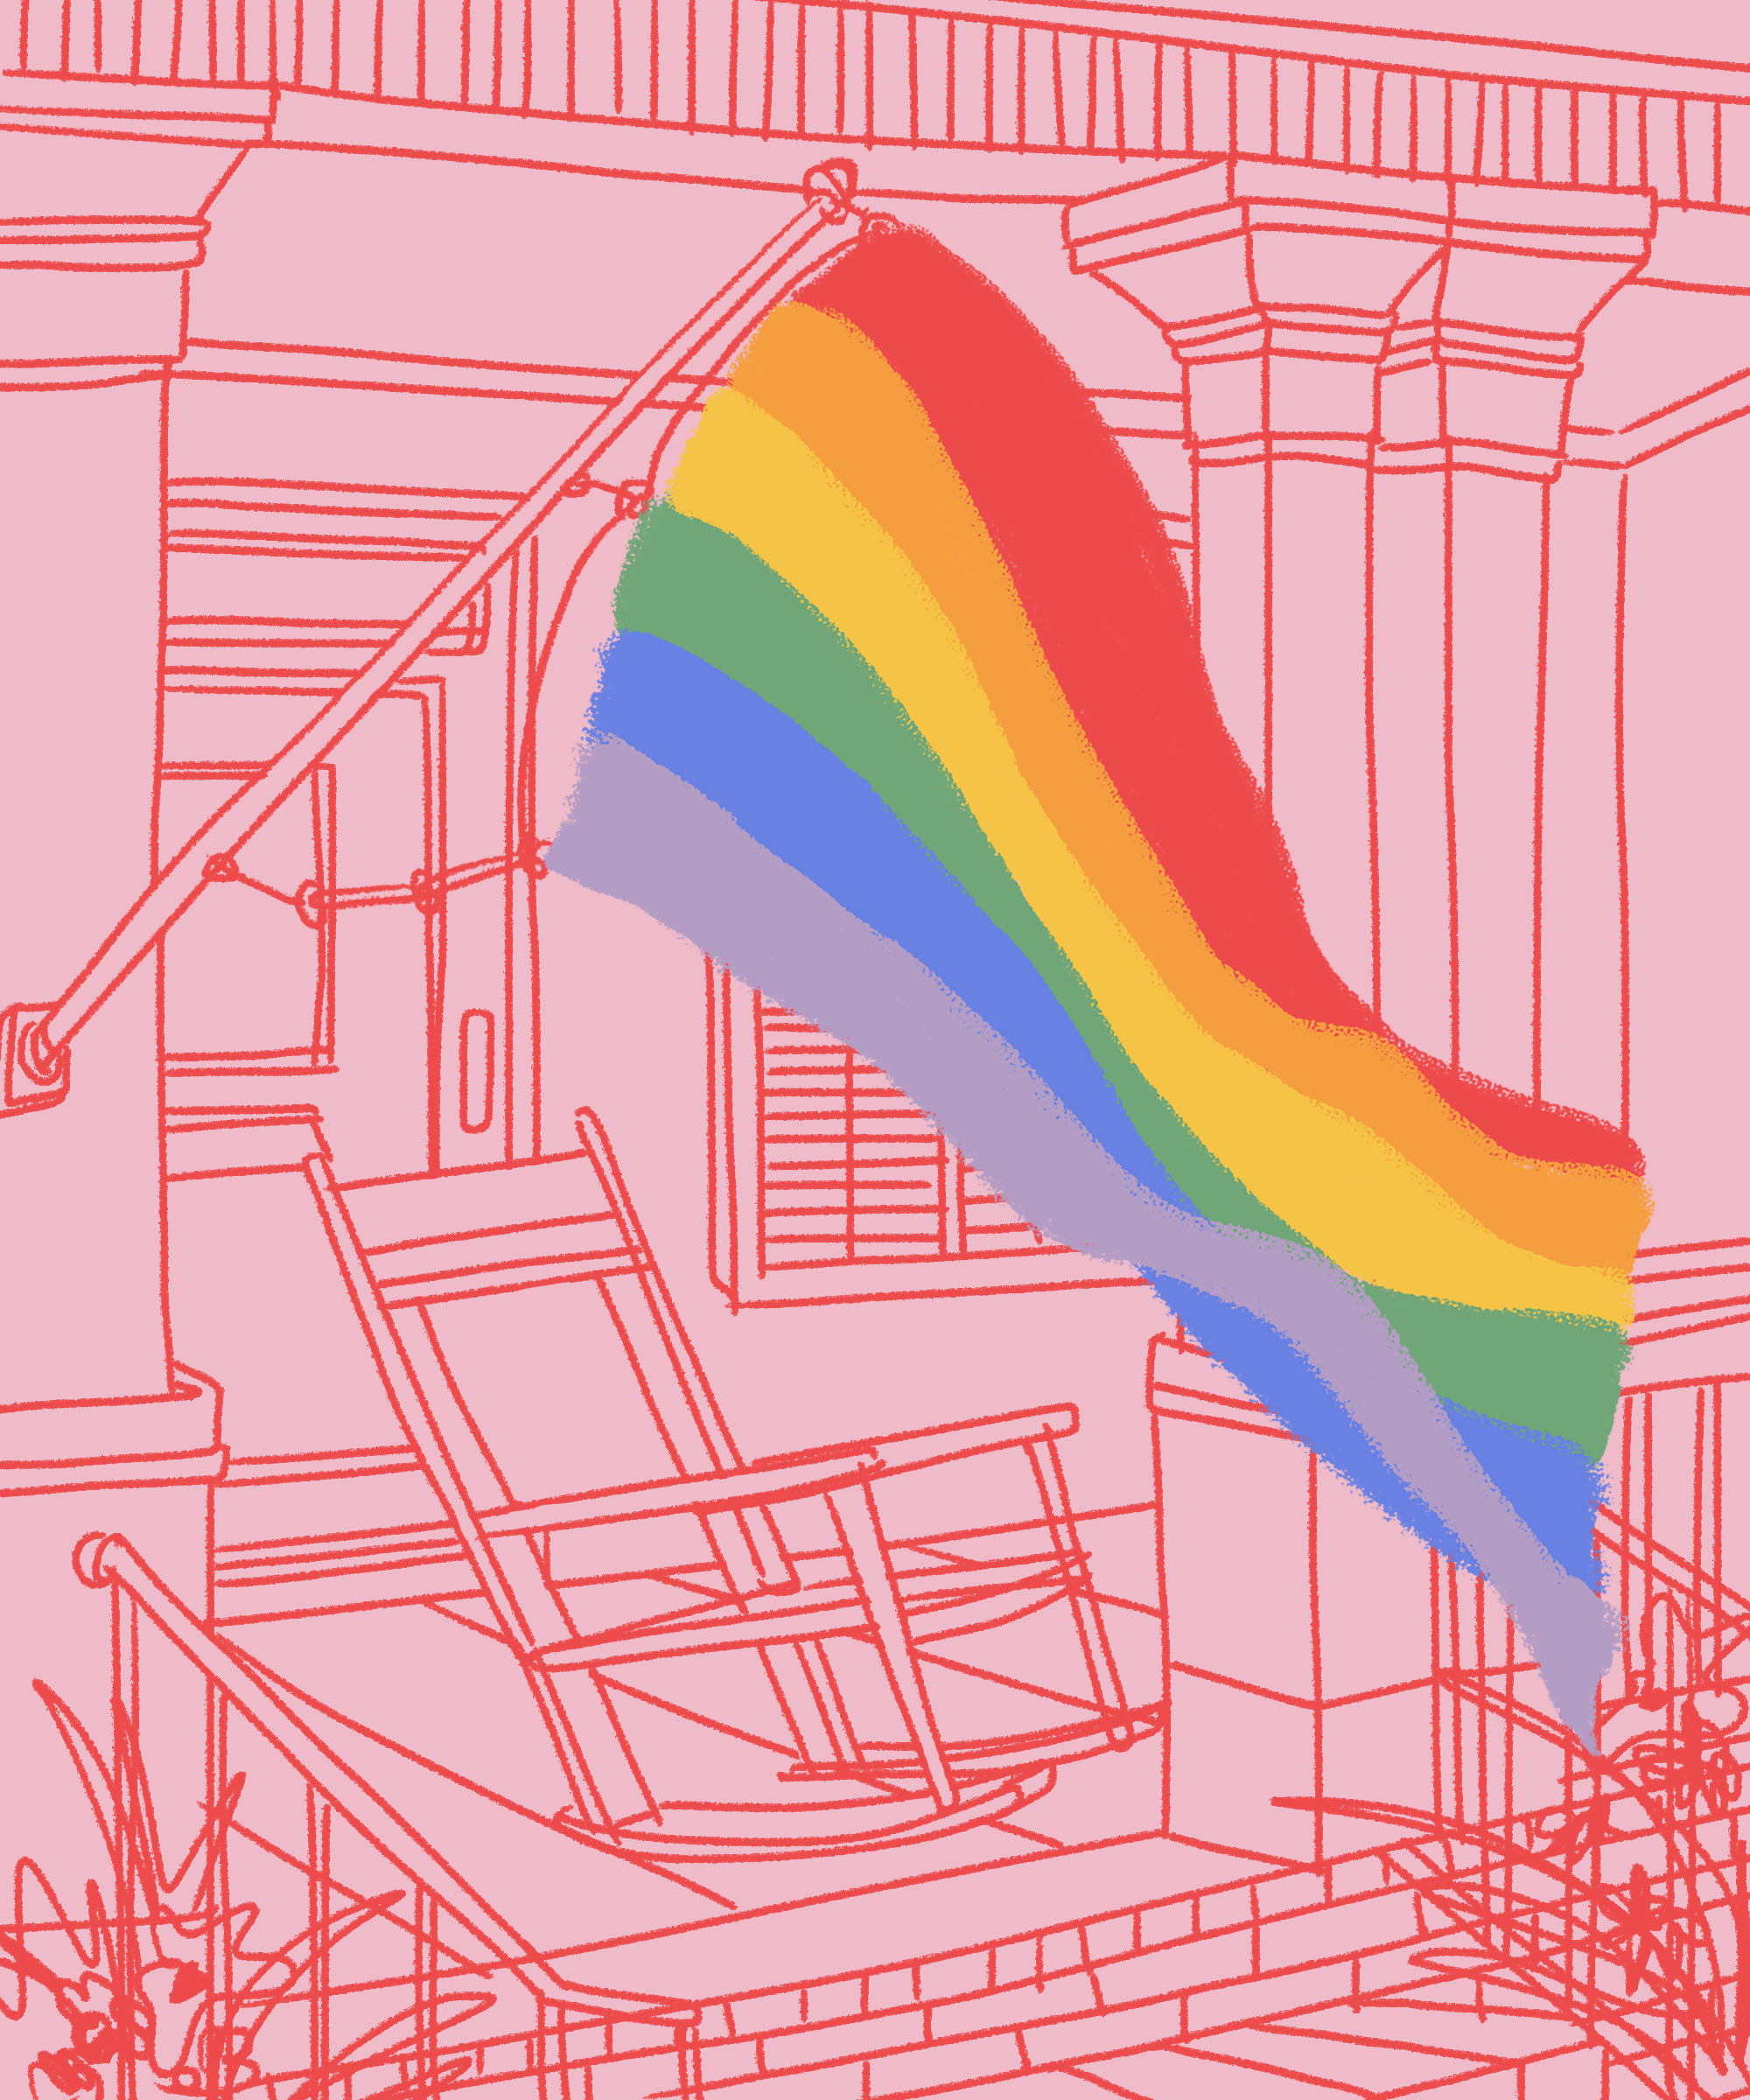 A Complete Guide To All The LGBTQ+ Flags & What They Mean